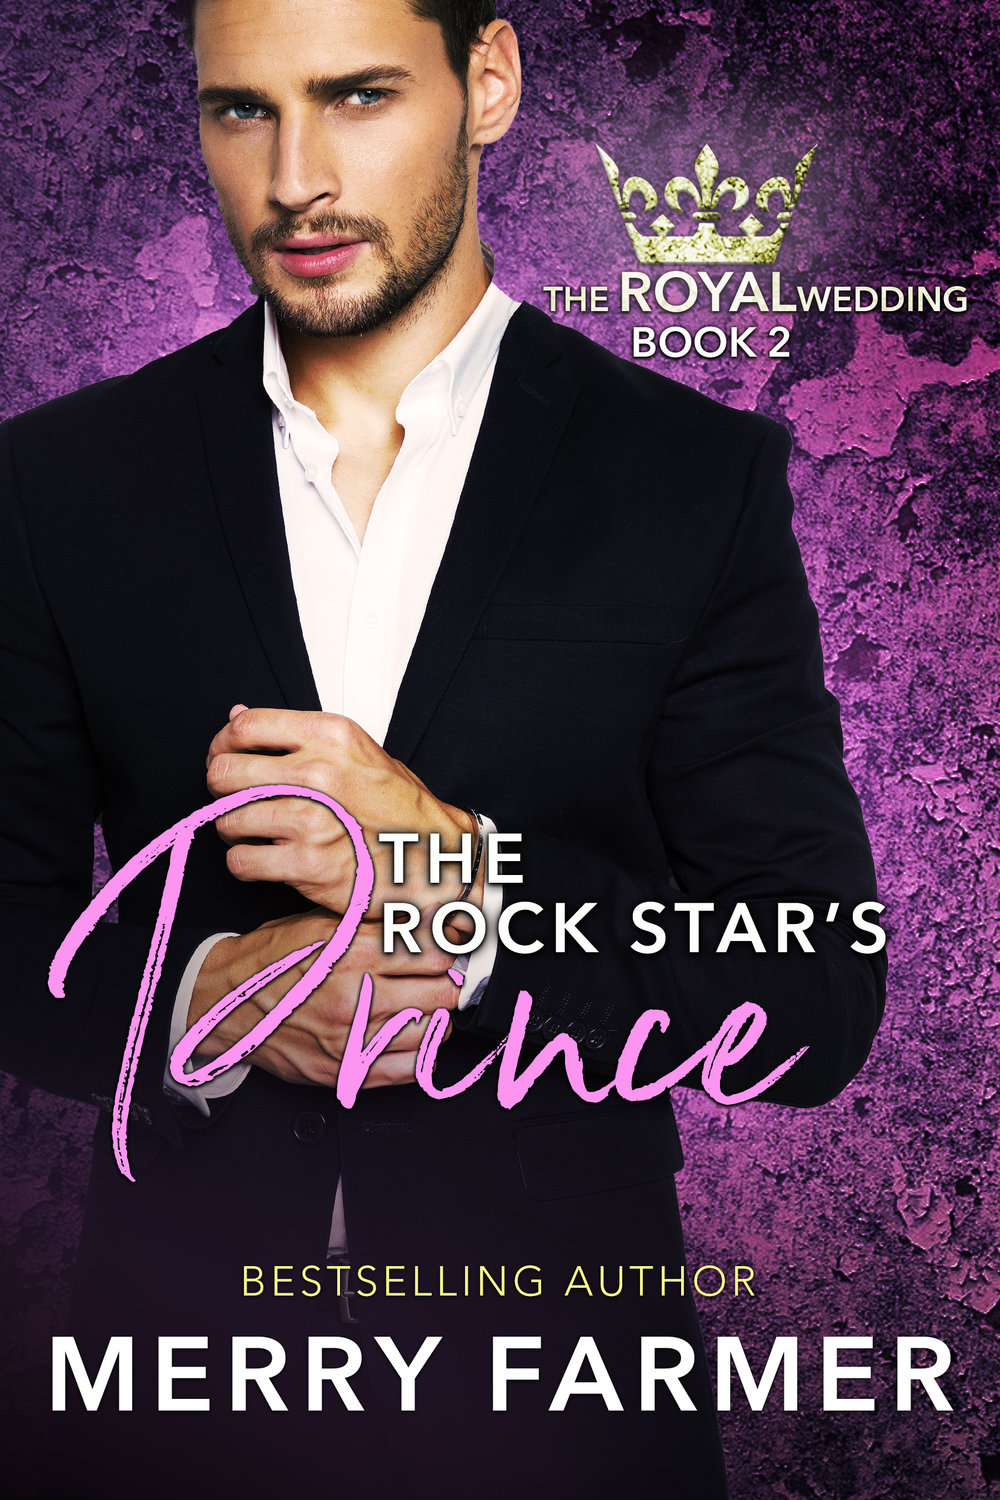 The Rock Star's Prince - by Merry Farmer (Book Two) - Prince Arne of Aegiria has always taken his responsibilities as Minister of Culture for his kingdom seriously and sought to raise the bar where artistic events are concerned. So when he is tasked with coordinating a concert on behalf of his mother, the queen—and told, not asked, that American pop singer, Fuchsia, will be the headliner—he is less than thrilled. Fuchsia represents the kind of over-the-top, tacky showmanship that he hates. The only bright spot in the coming fiasco is demure, intelligent Emma Sands, part of Fuchsia's entourage.But not everything is as it seems.Emma never set out to deceive Arne, but without her Fuchsia make-up and costumes, just about everyone mistakes her for a quiet groupie. And when Fuchsia finds herself falling into one embarrassing situation after another, incidents so bad they threaten relations between Aegiria and America, the last thing she wants to do is admit who she really is.There's more to the mishaps that keep befalling Emma and her band, though, and with a little digging, she and Arne discover someone is trying to stop the monumental announcement planned for the end of the concert. Can they uncover the culprit before it's too late? And will Emma's big revelation bring her and Arne closer together or tear them apart?PLEASE BE ADVISED: Steam Level - Hot....3.5 out of 5 with an